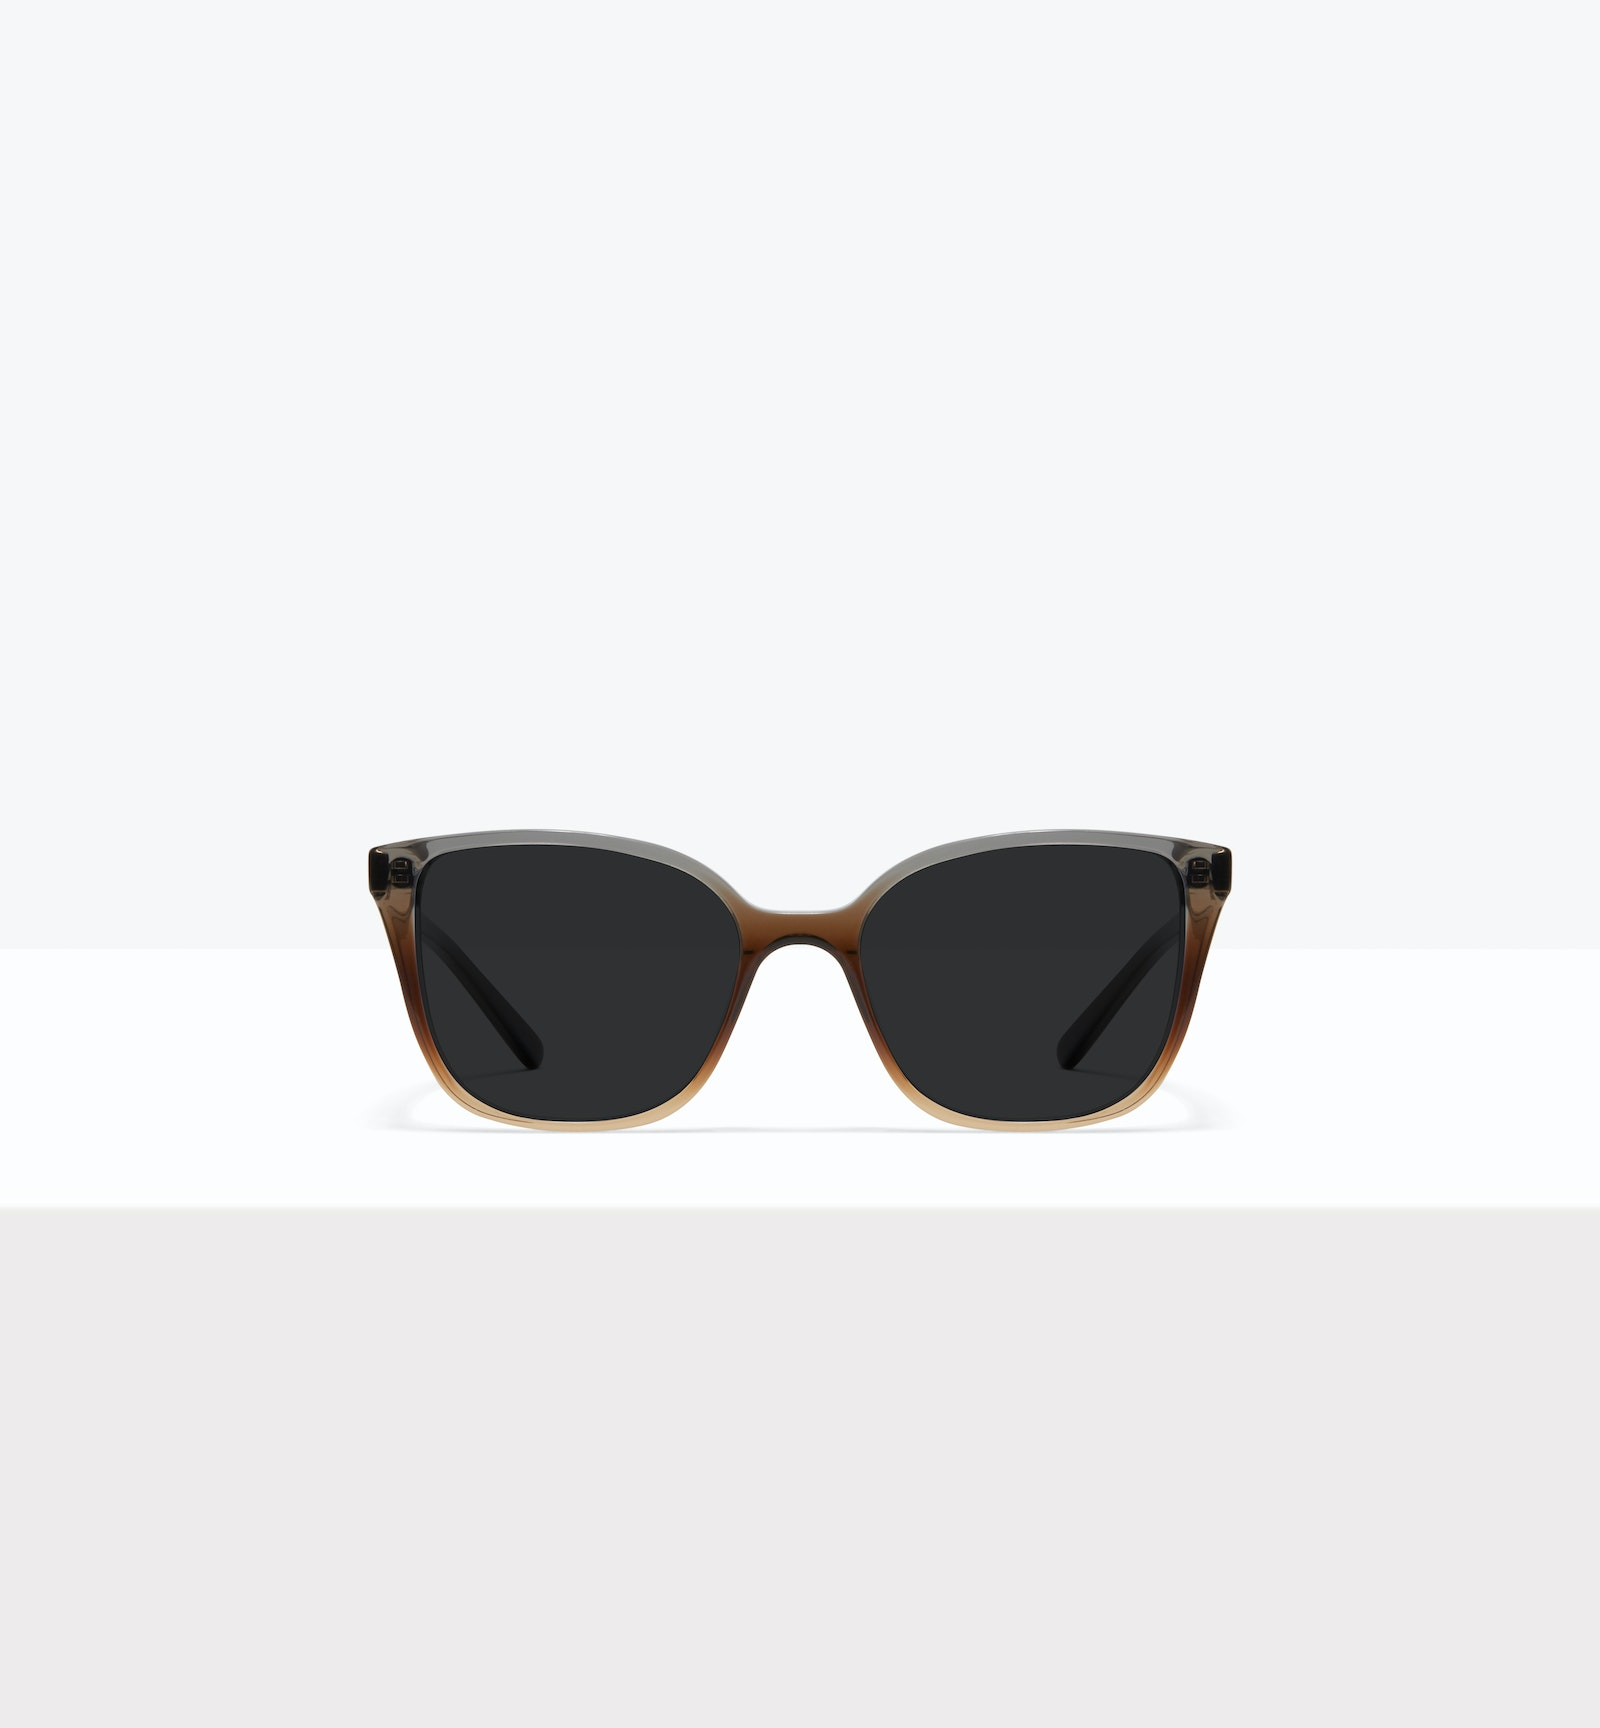 Affordable Fashion Glasses Square Sunglasses Women Only M Fog